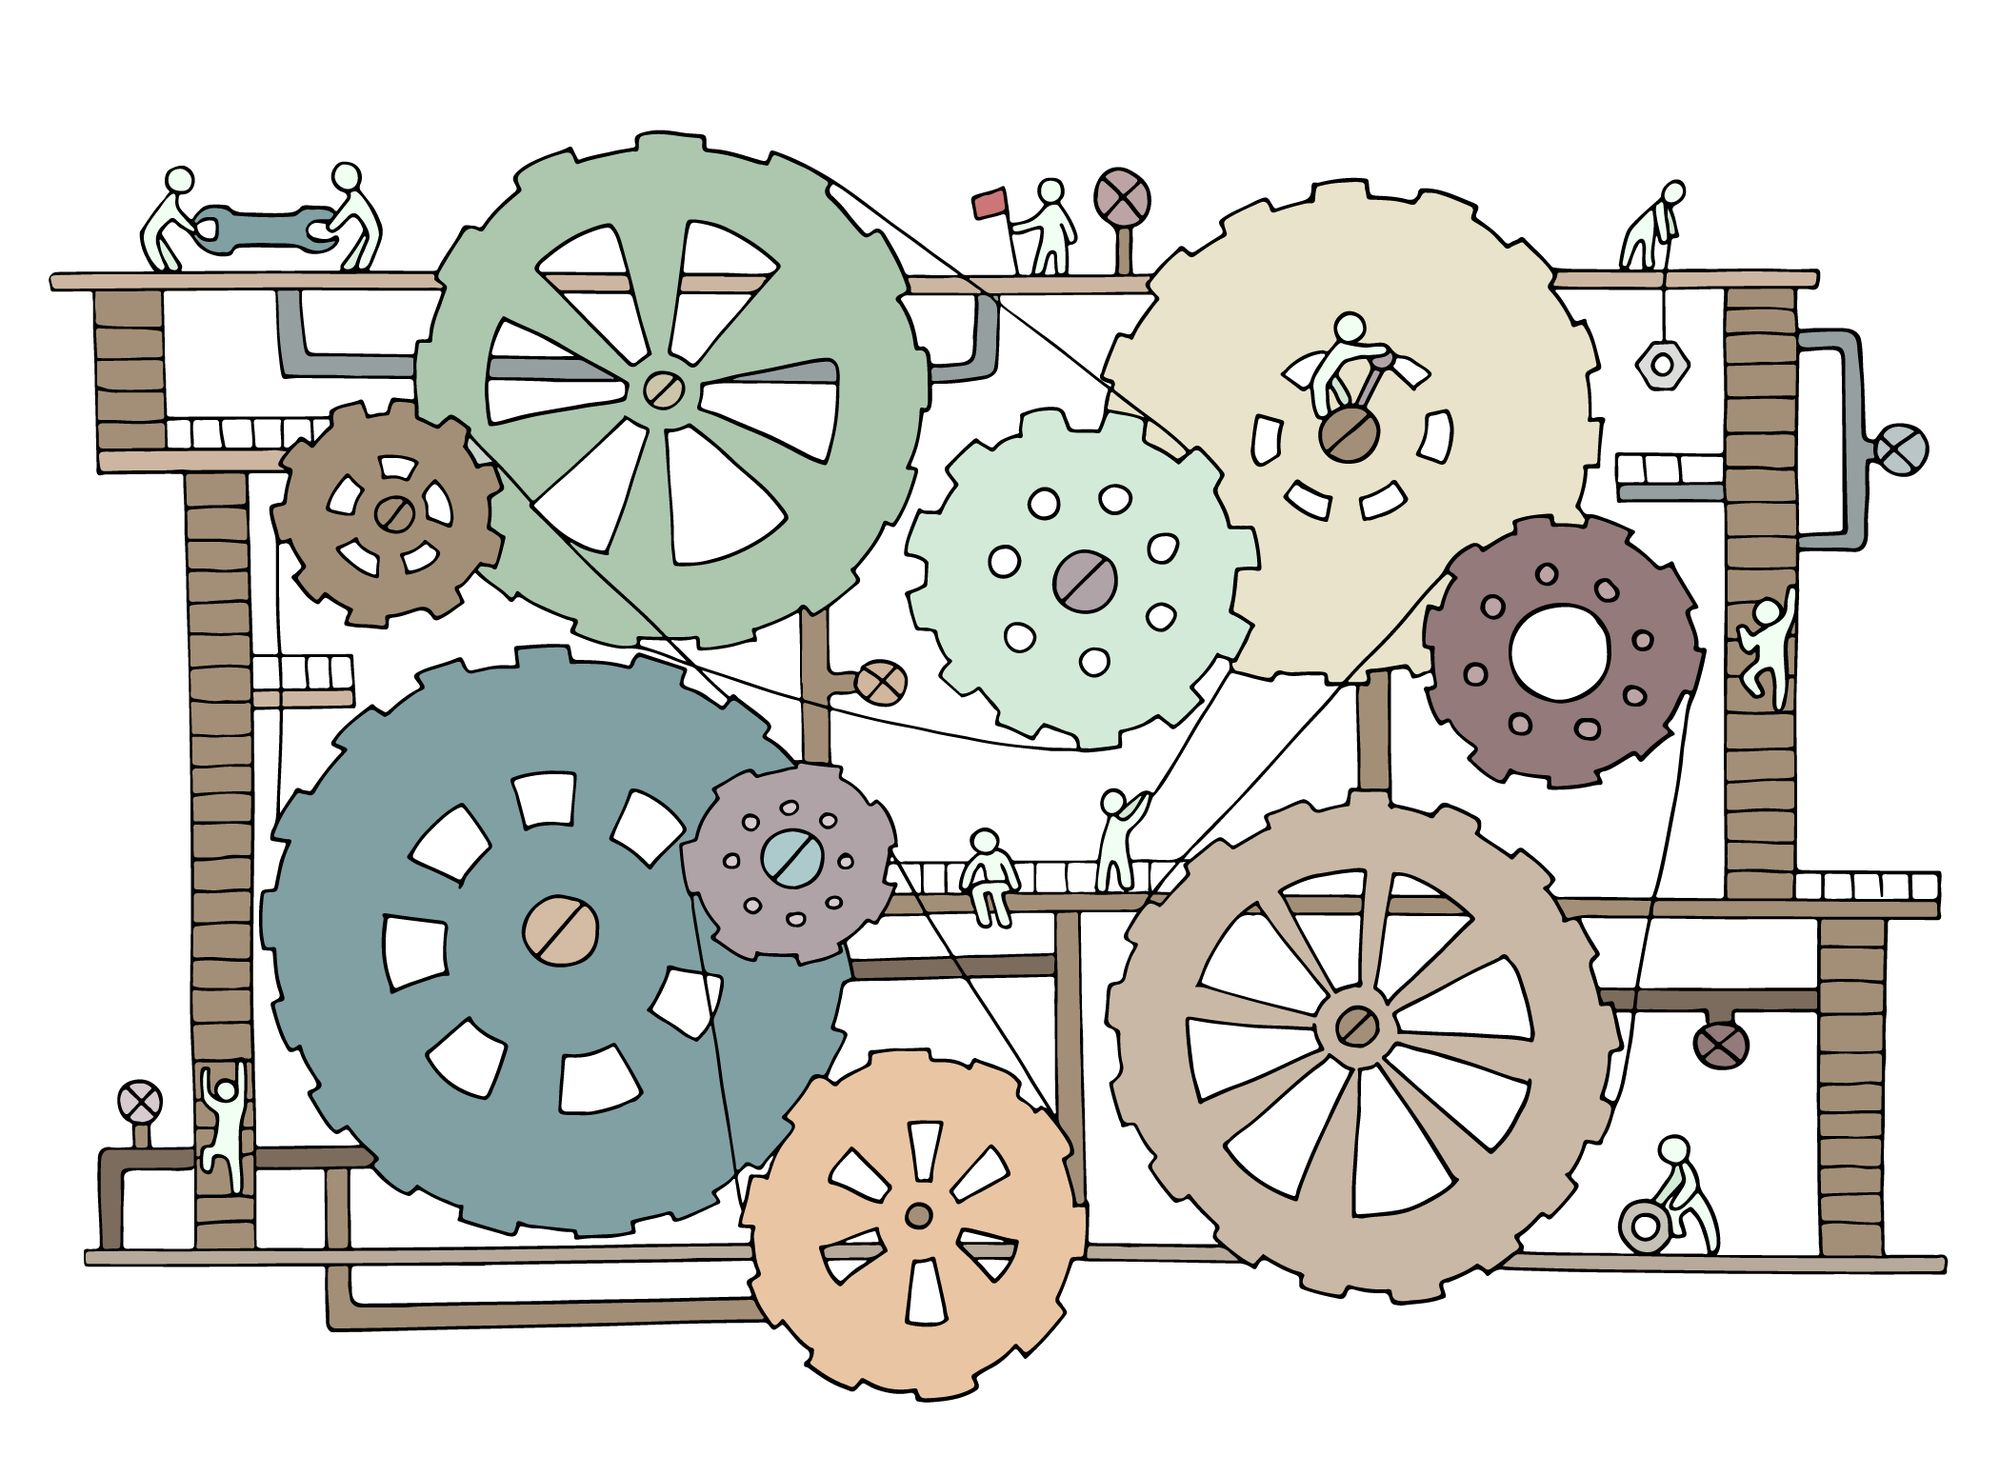 gears symbolizing teamwork and automation